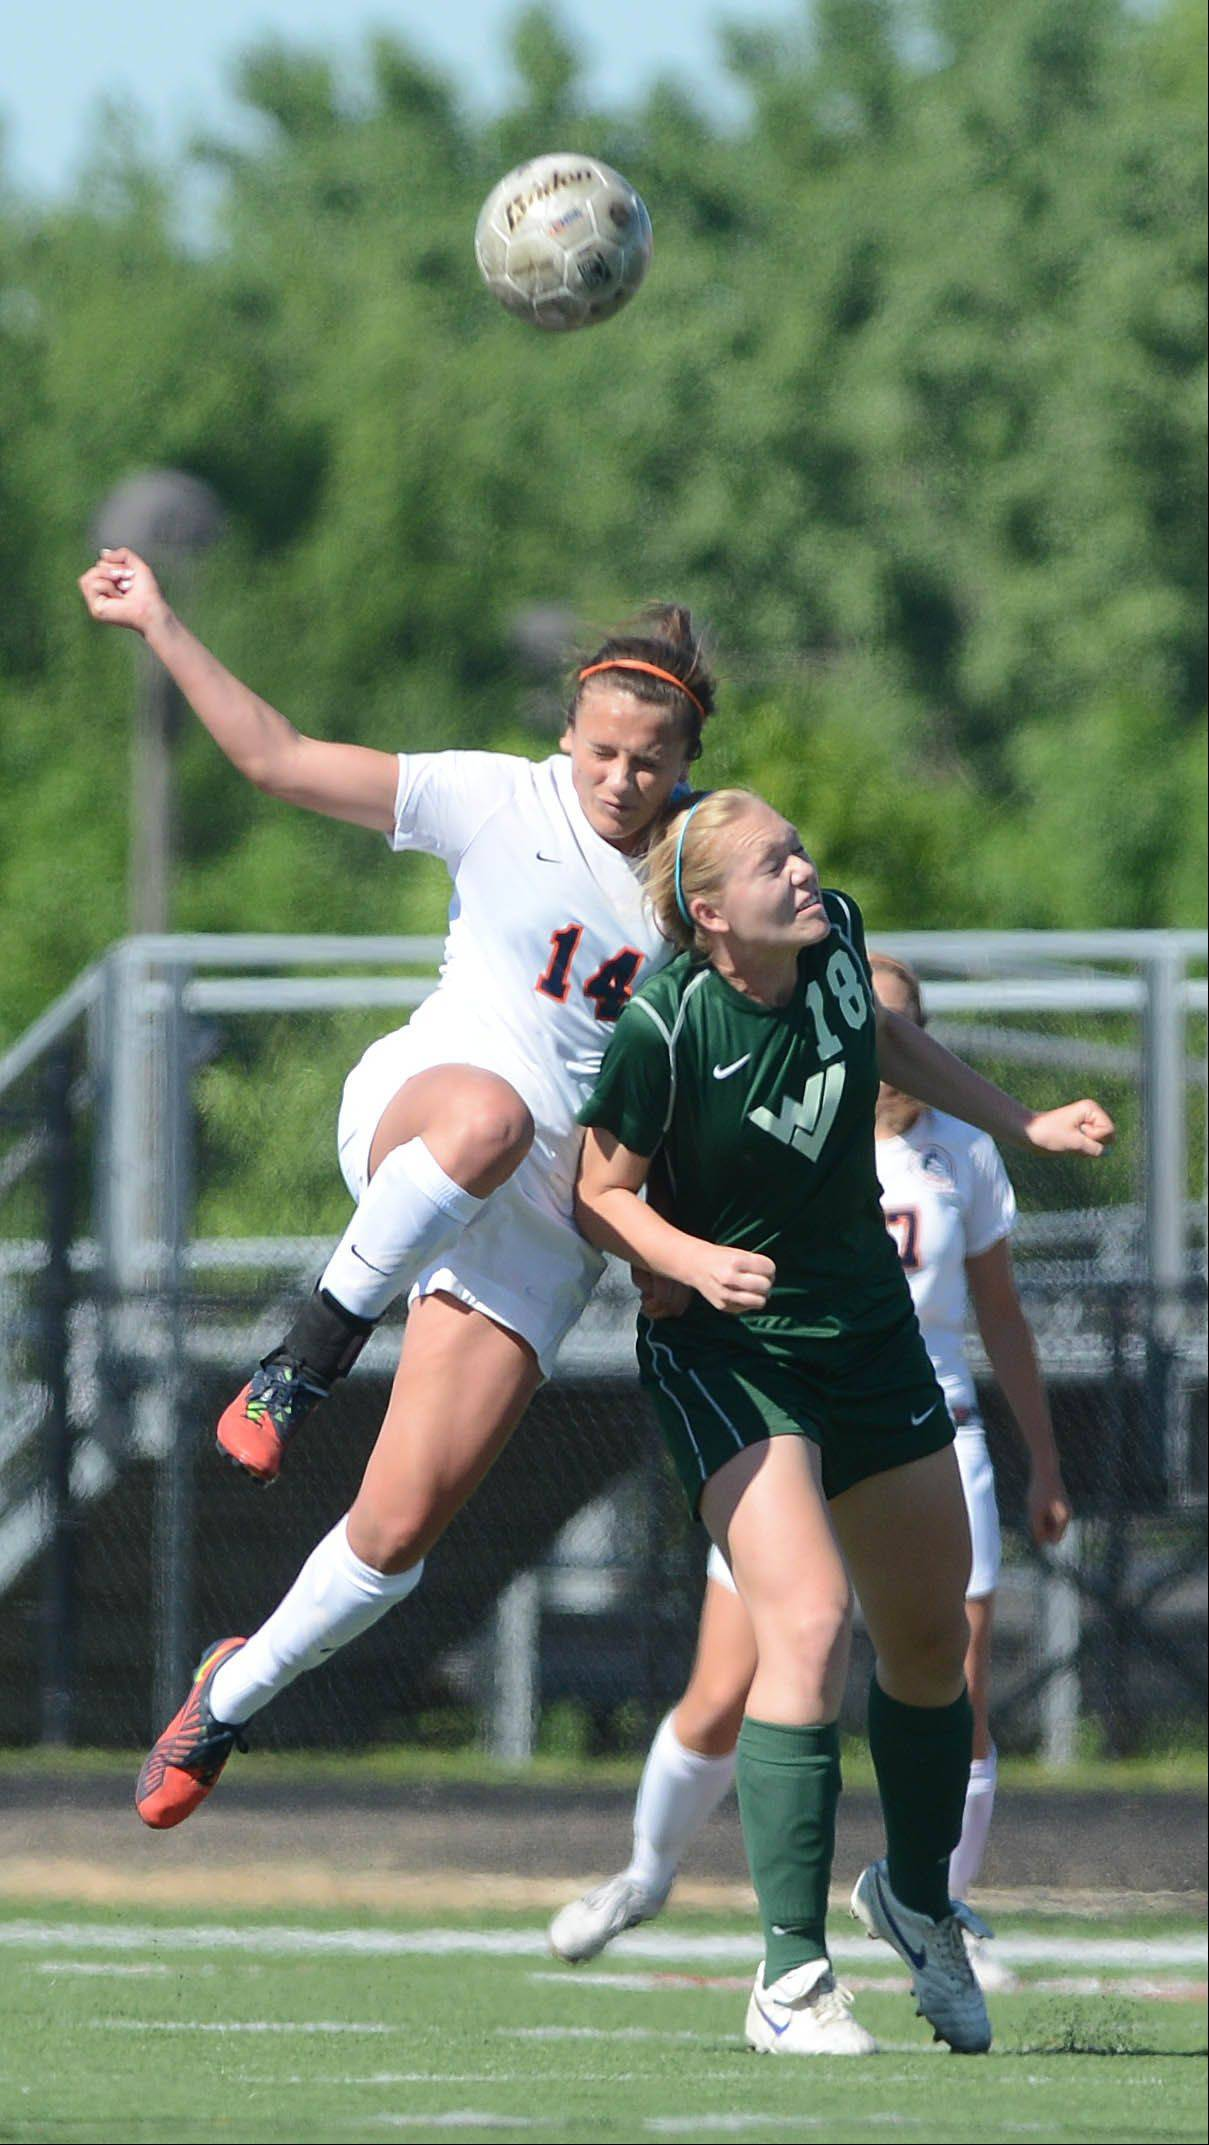 Christa Szalach of Napoerville North and Morgan Kemerling of Waubonsie Valley go up for a ball during the Class 3A Bolingbrook girls soccer sectional final Friday.